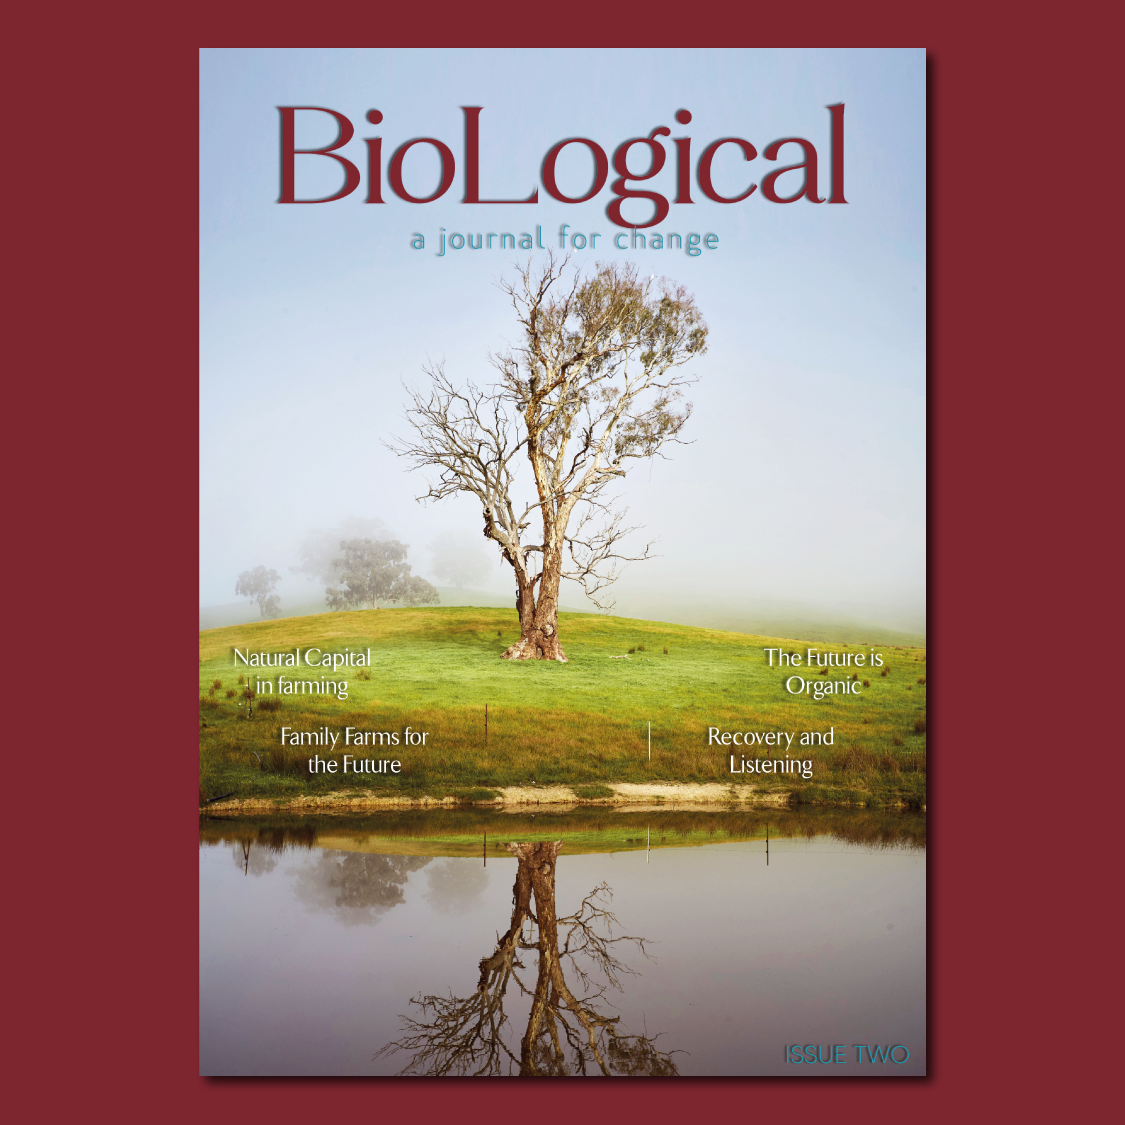 BioLogical Issue Two Cover Image